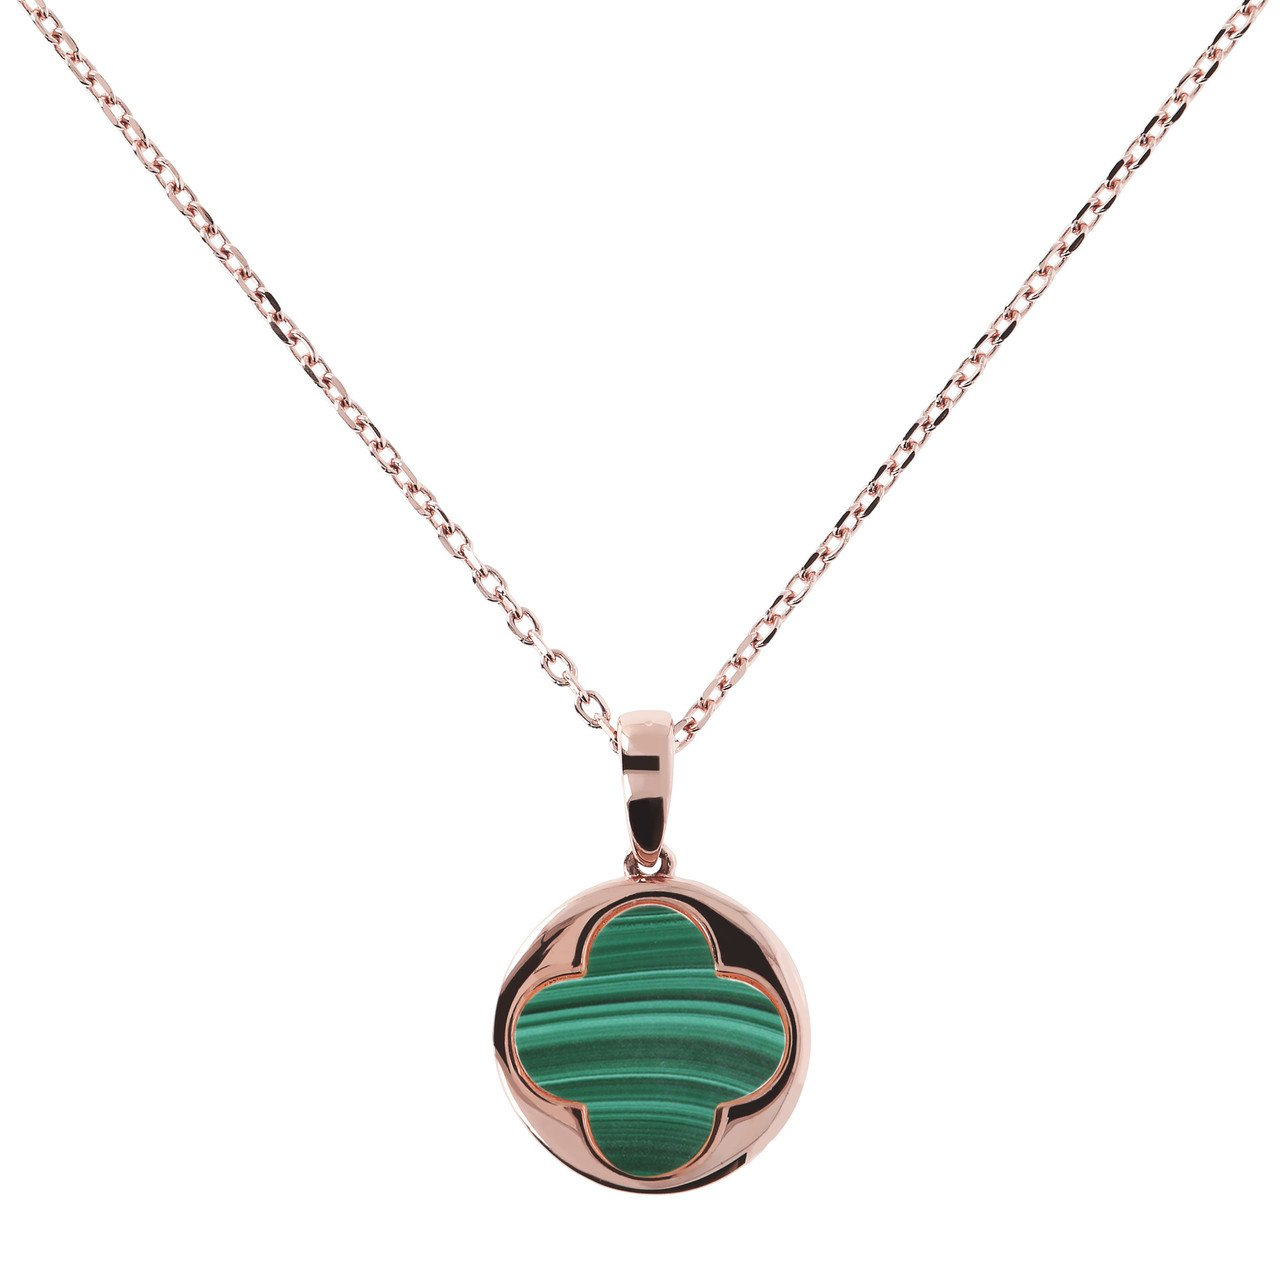 Big-Four-Leaf-Clover-Charm-Necklace-MALACHITE